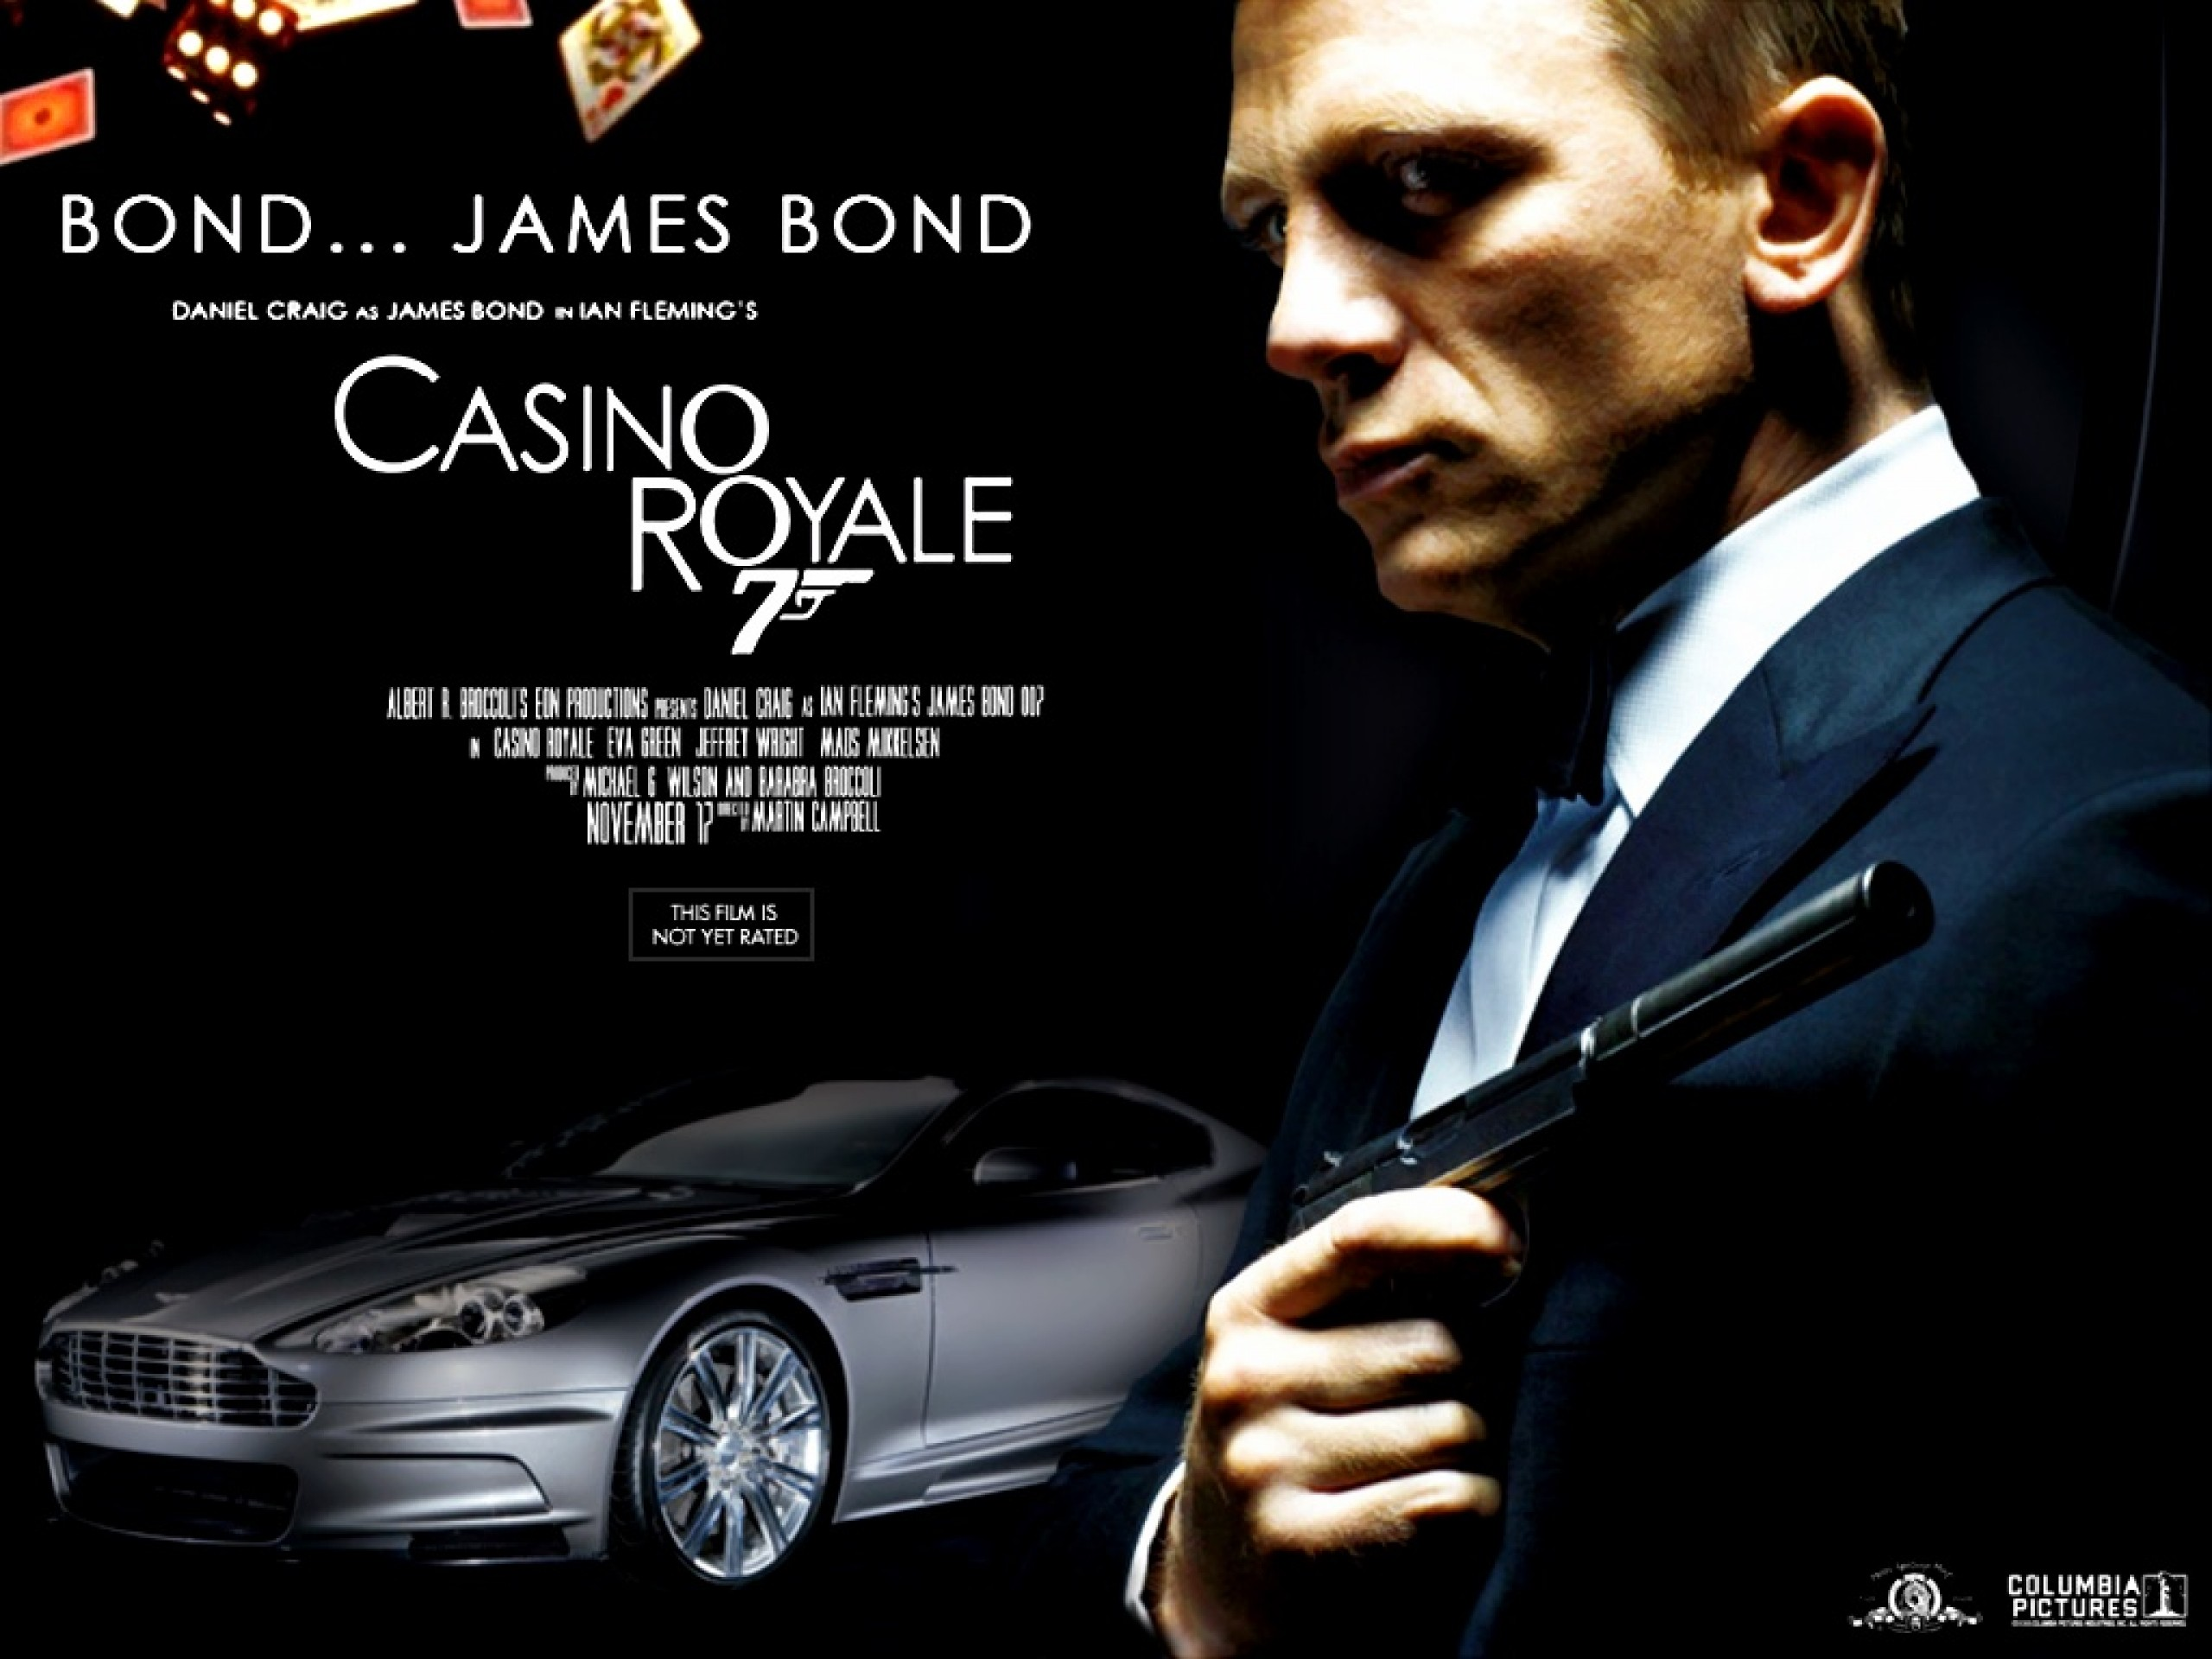 james bond casino royale full movie online games twist login